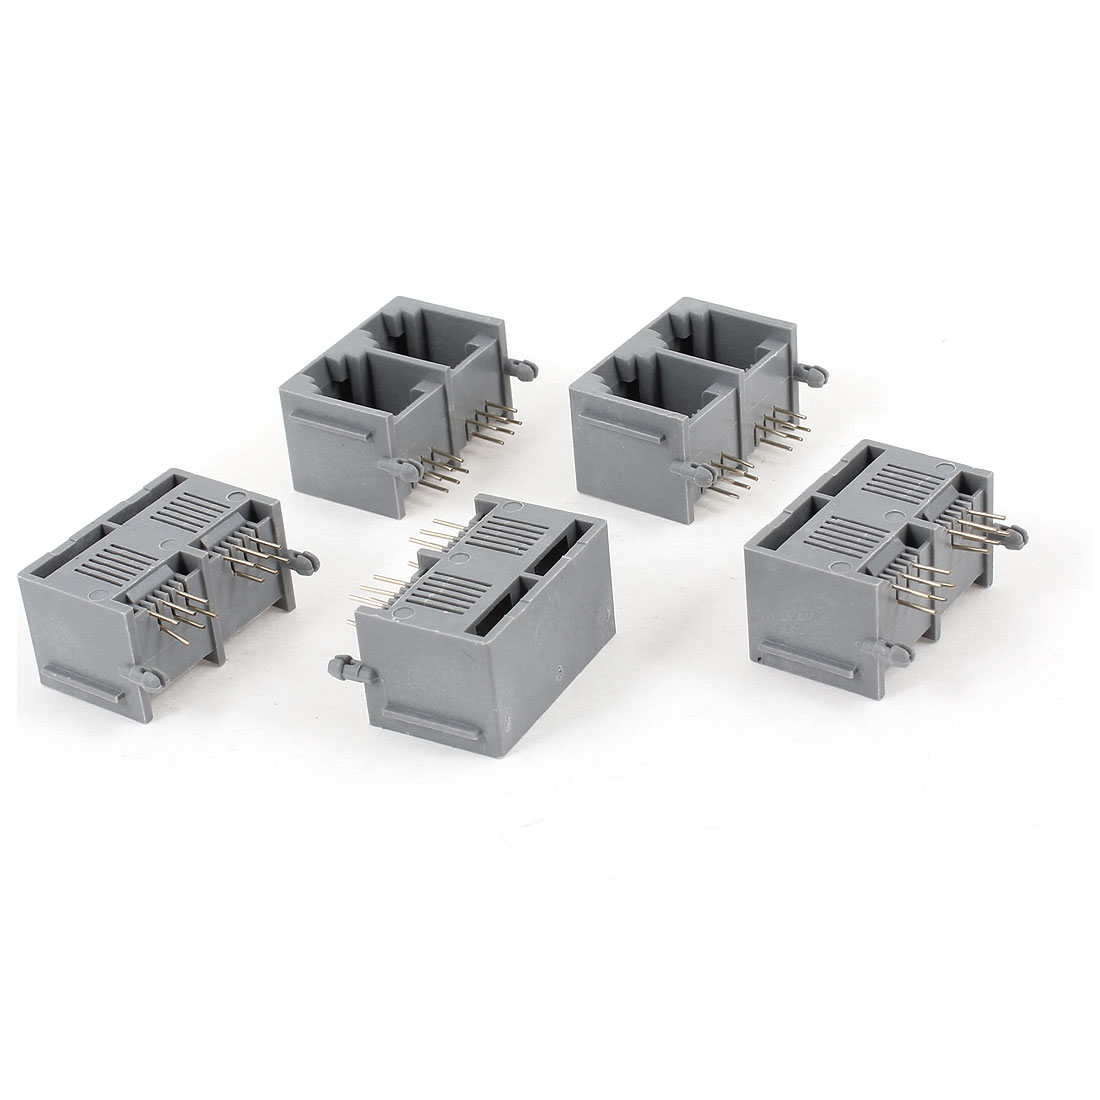 5 Pcs Gray Unshielded Two-Port RJ12 6P6C Network Modular PCB Jacks Connector